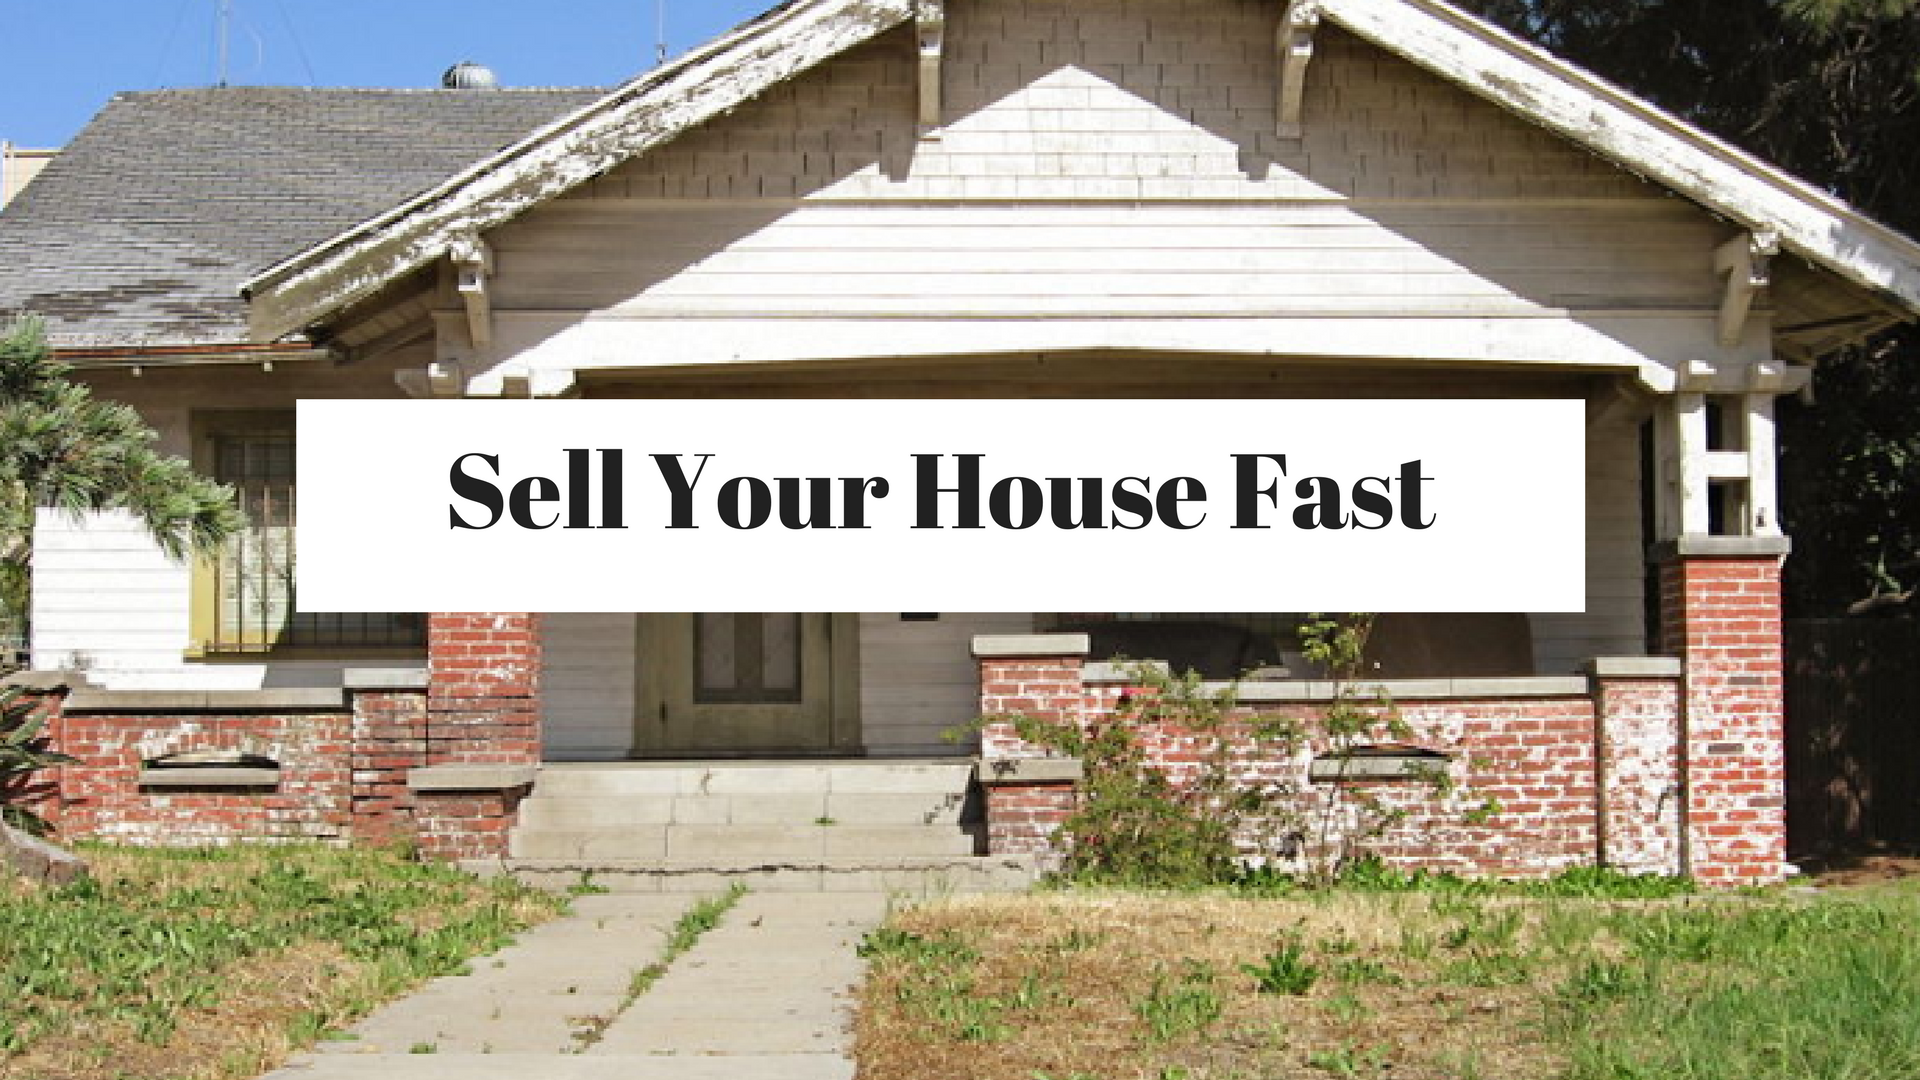 Sell Your House Fast Rowlett Tx Archives  We Buy Houses. E Newsletter Templates Free Download. Ohio Health Care Insurance Koenig It Training. Moss Rehab Center City Seminaries In Oklahoma. Simple Web Site Design Desert Mountain Ob Gyn. Lis Lab Information Systems Retirement At 57. Best Mortgage Companies To Work For. Homestead Mutual Funds Asset Tagging Software. Payment Gateway Provider Cell Phone Scan Code